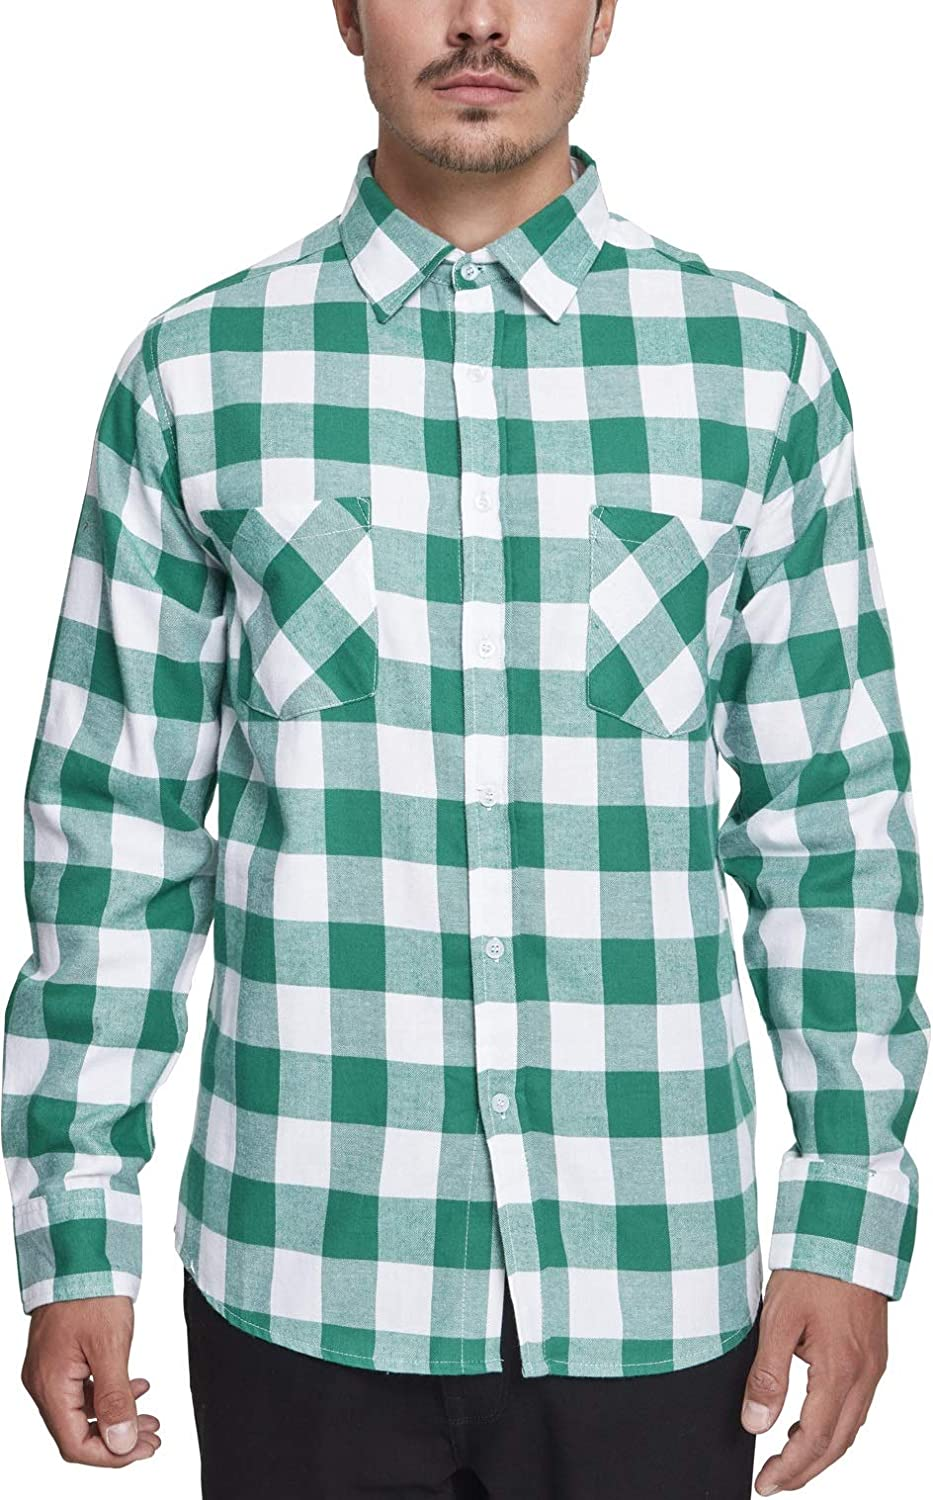 Urban Classics Checked Flanell Shirt Camisa Casual para Hombre